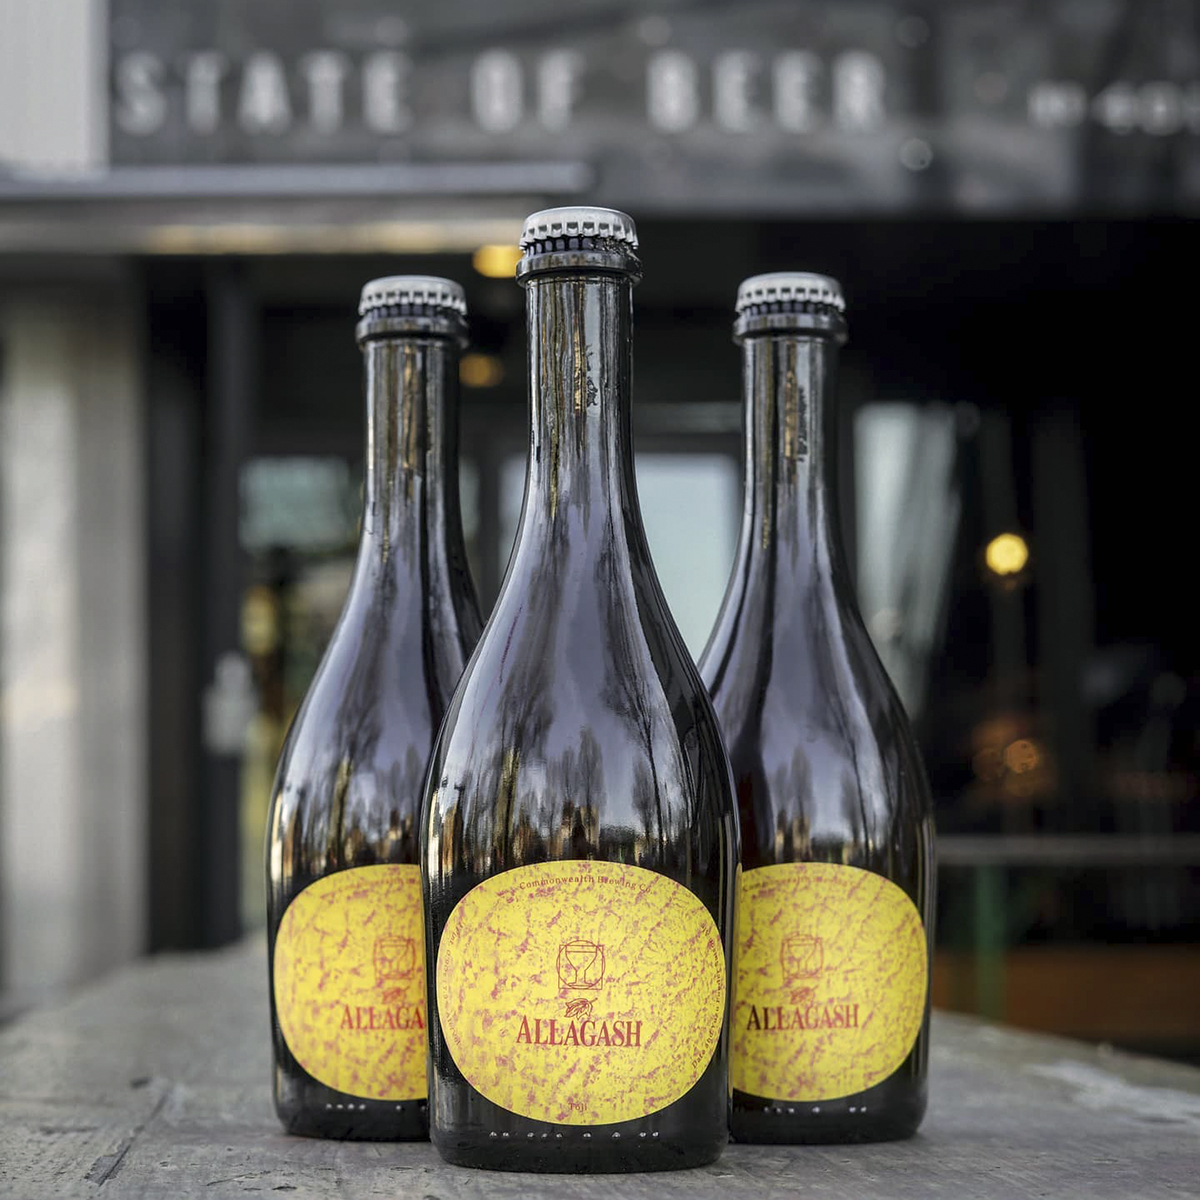 Saison beer bottles at State of Beer